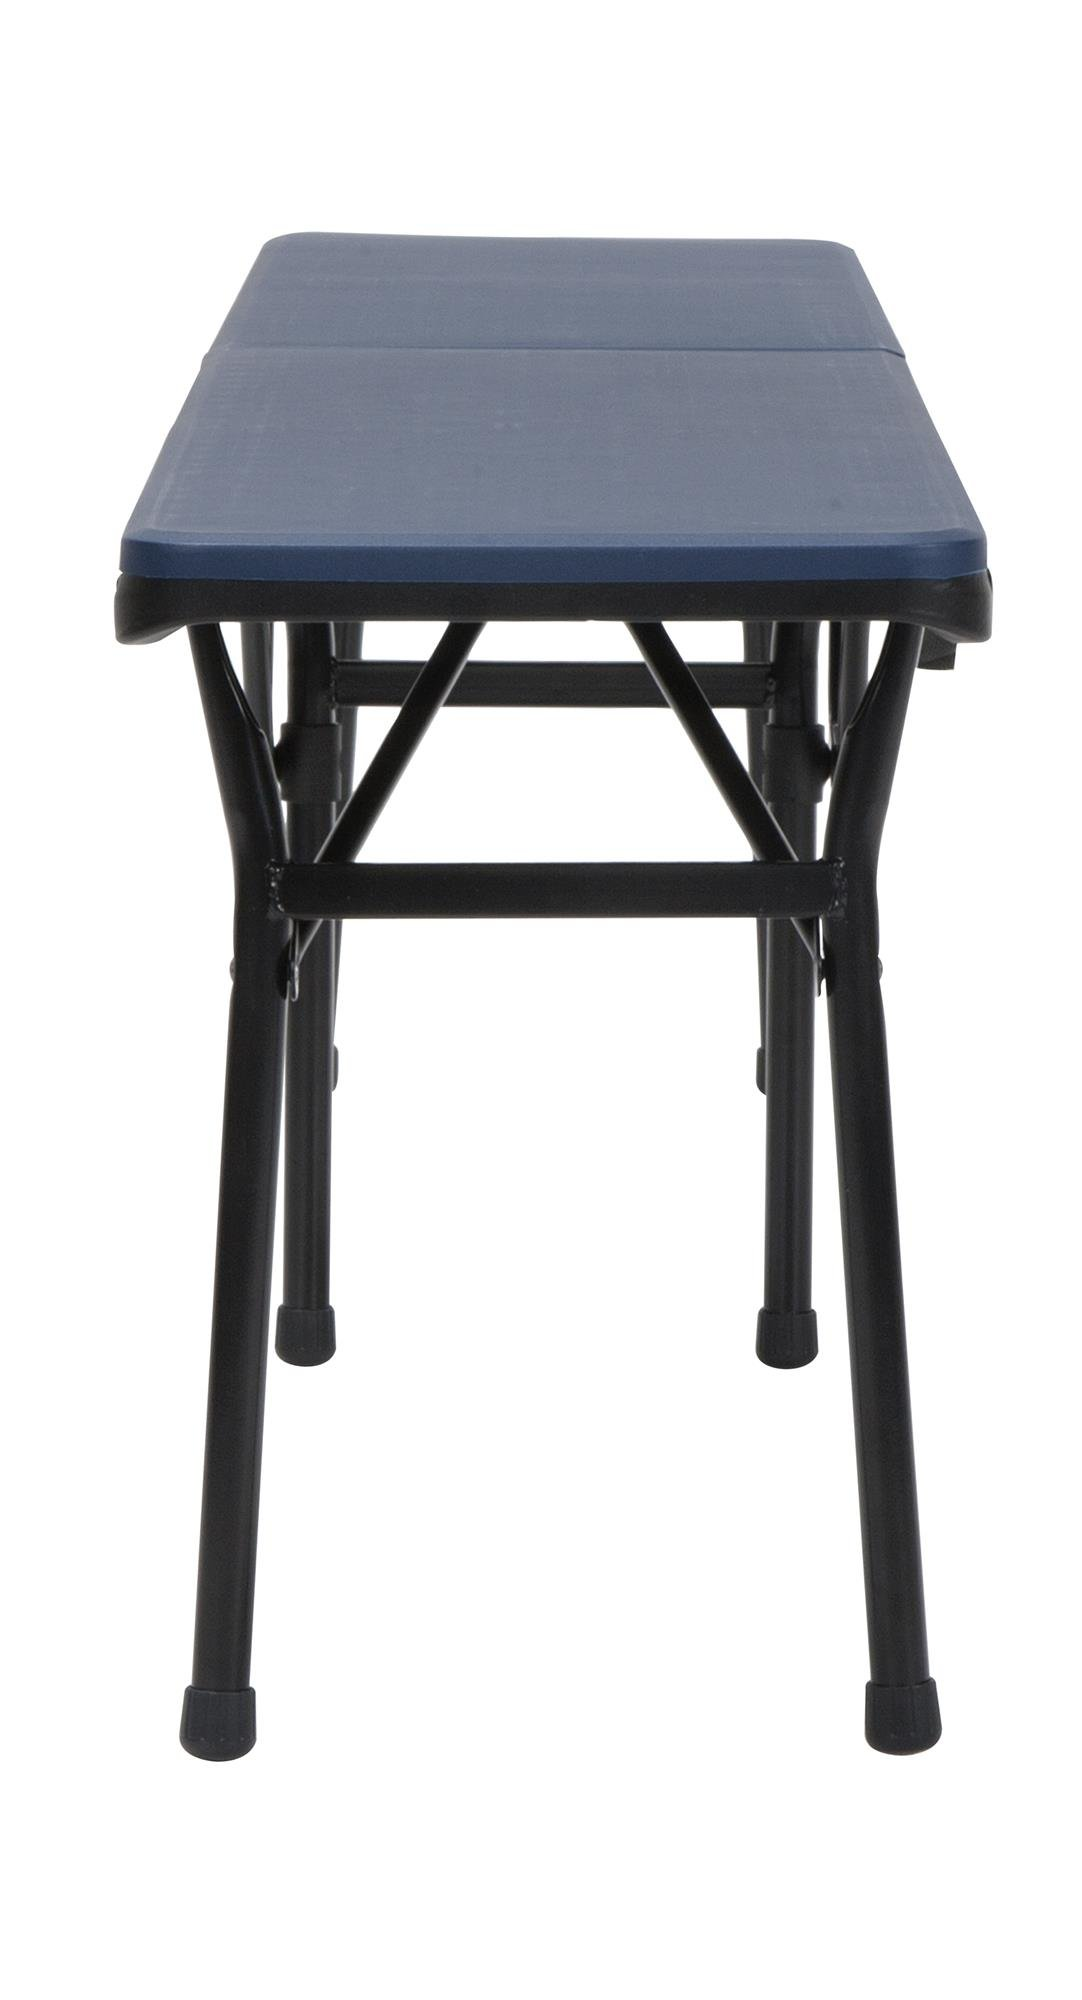 COSCO 6 ft. Indoor Outdoor Center Fold Tailgate Bench with Carrying Handle, Dark Blue Bench Top, Black Frame, 2-pack by Cosco Outdoor Living (Image #4)